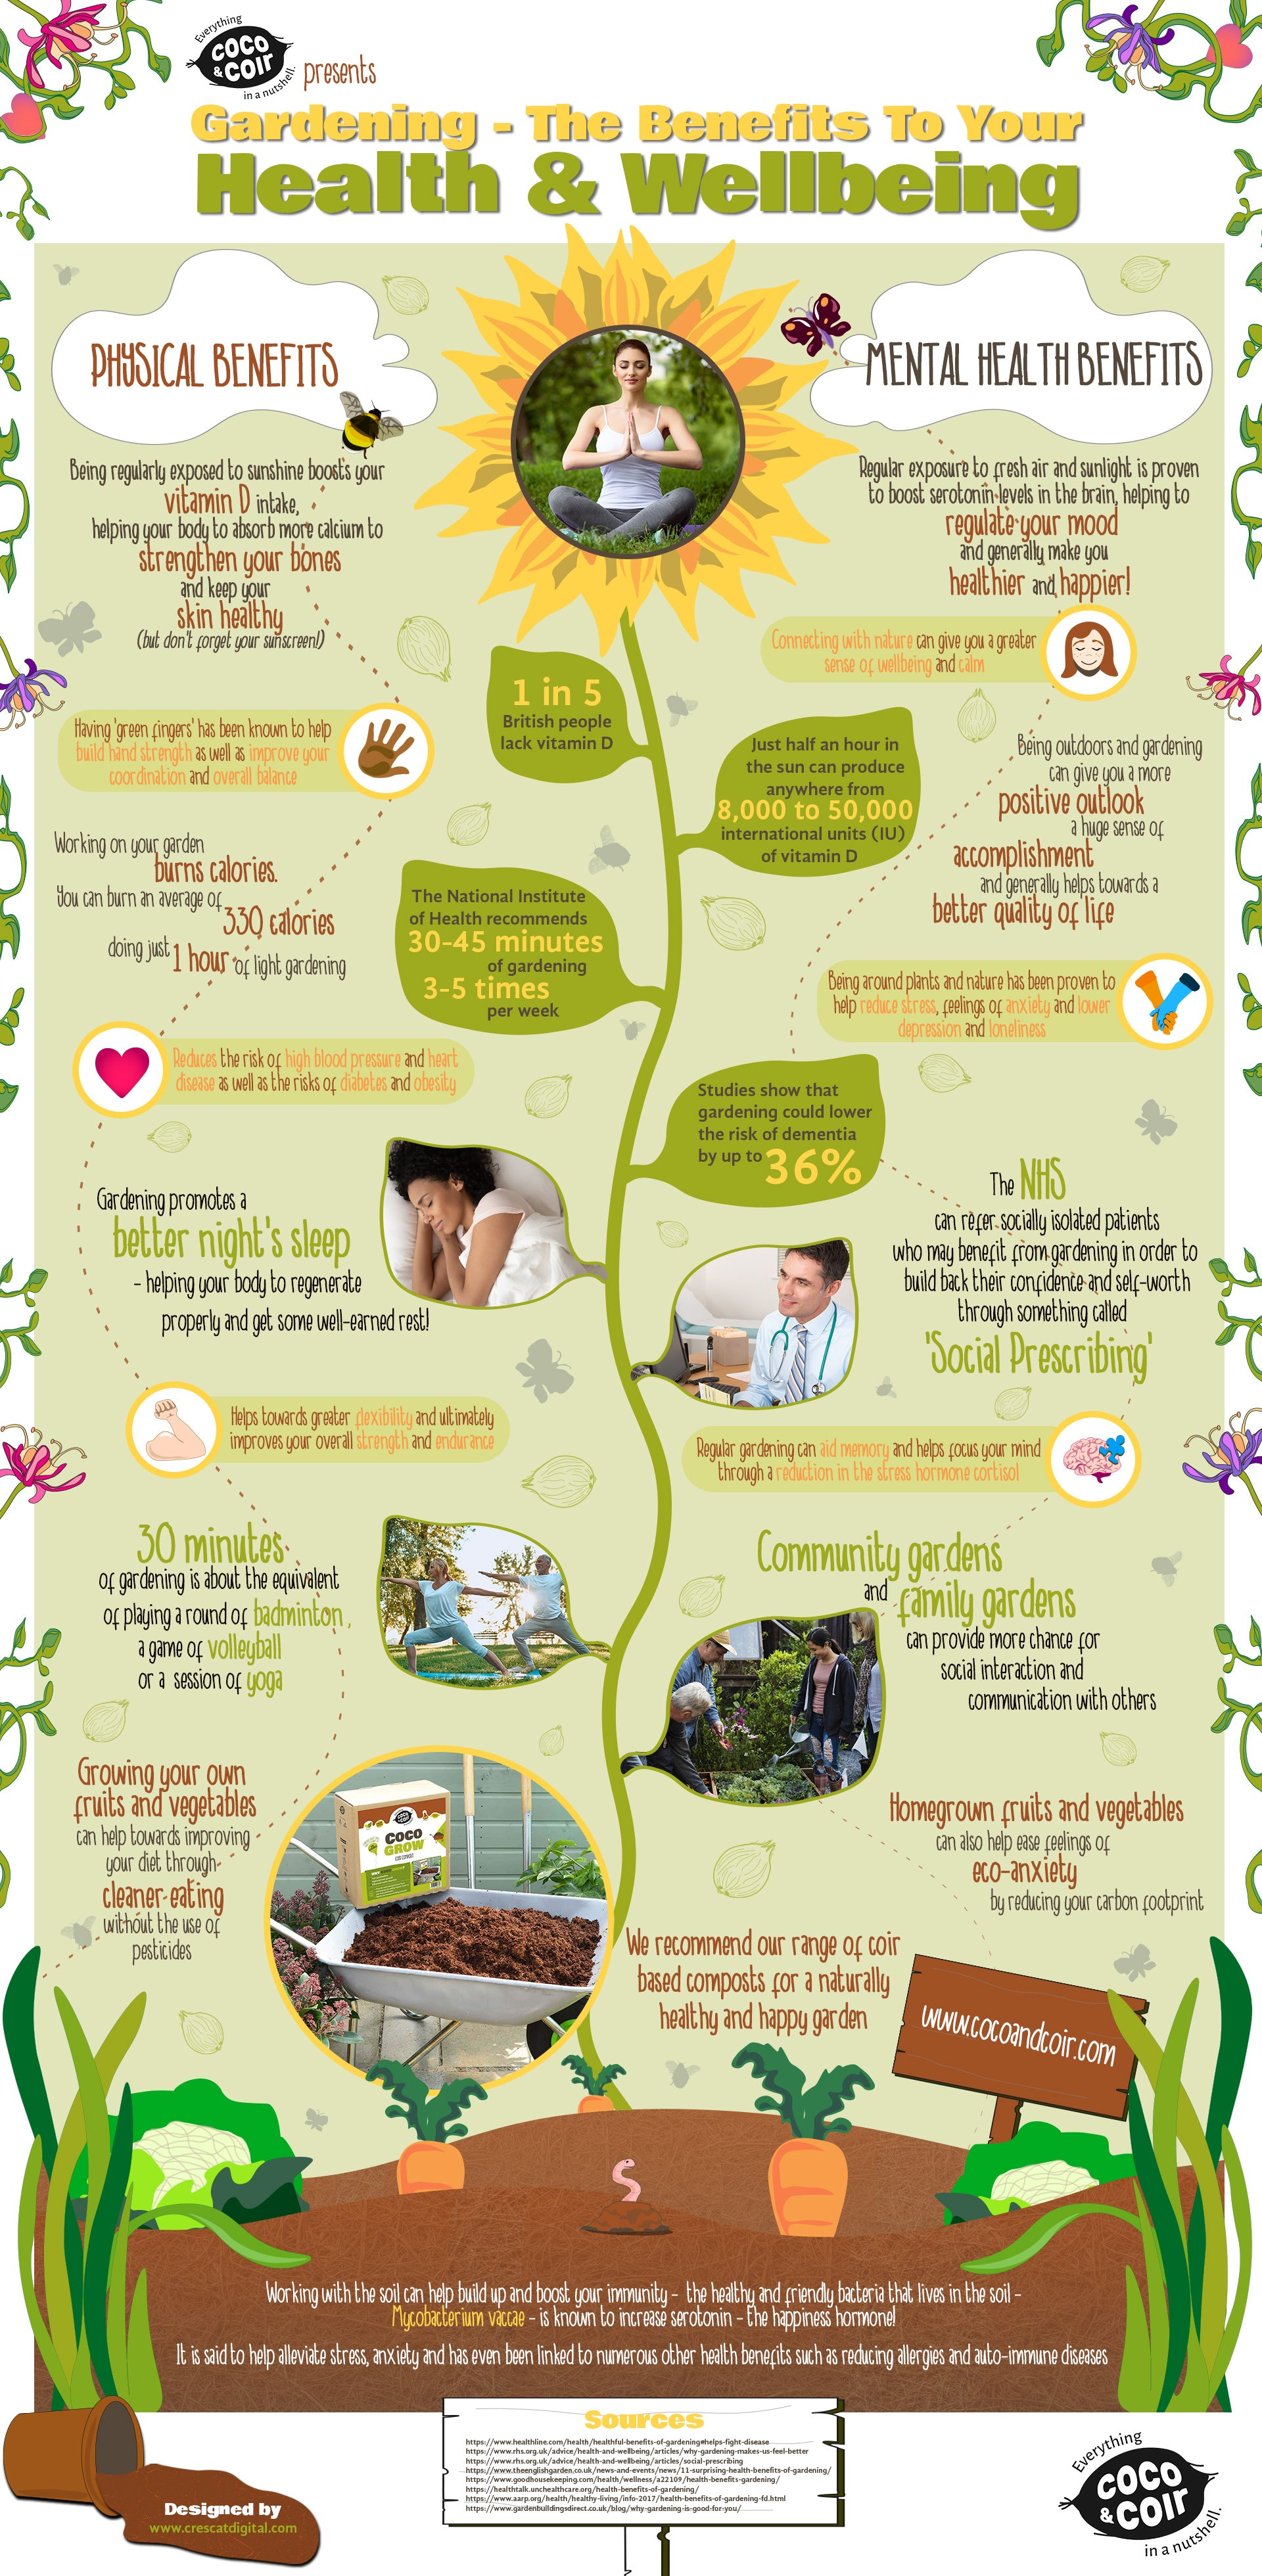 Gardening - The Benefits To Your Health and Wellbeing